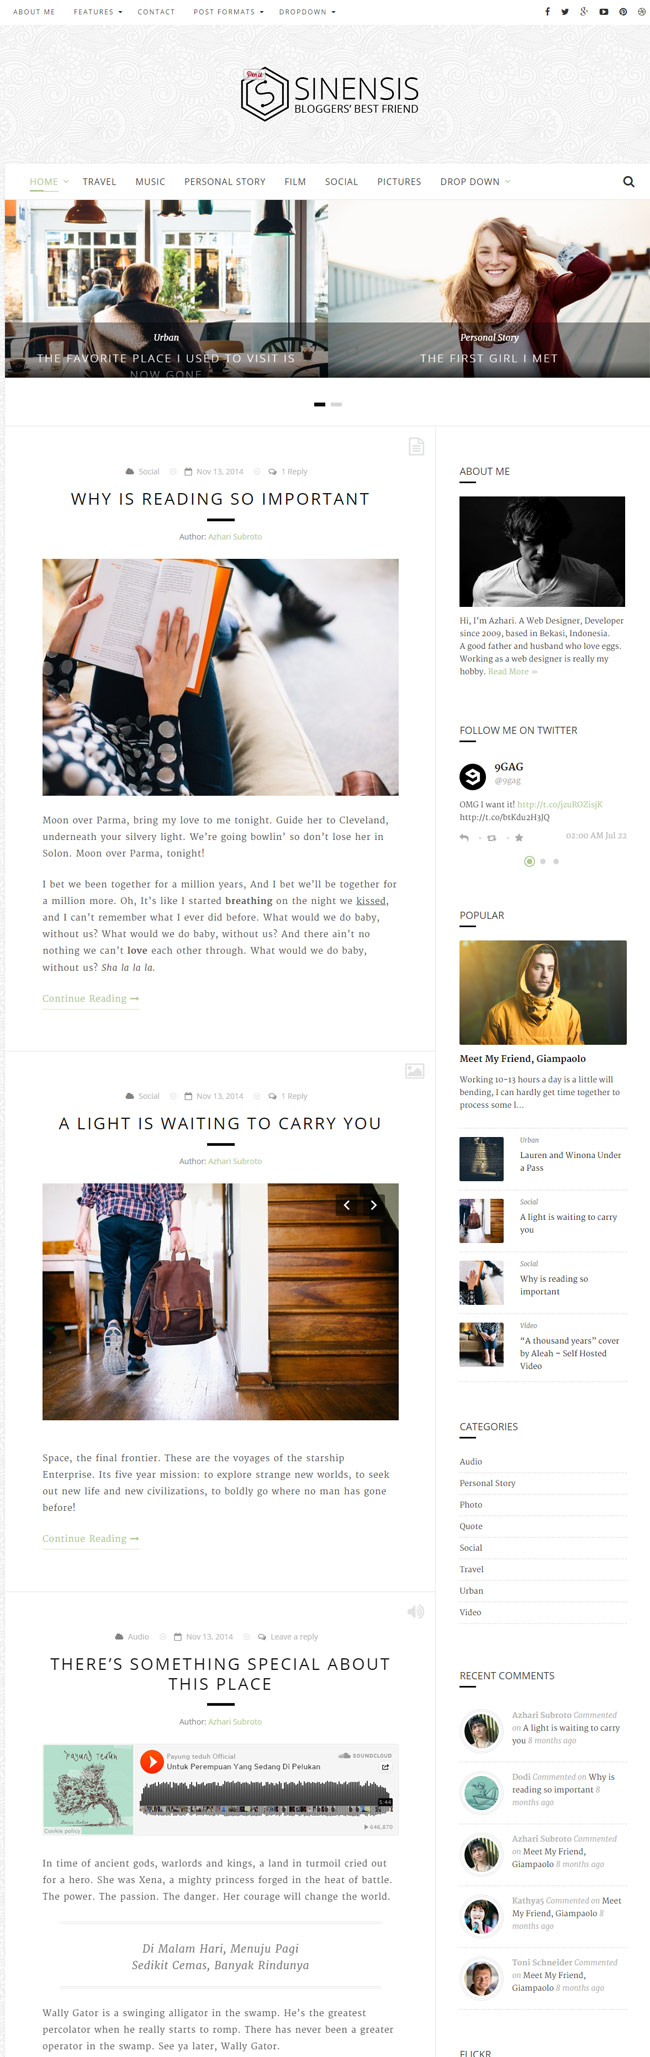 Sinensis-Simple-and-Clean-Wordpress-Blog-Theme